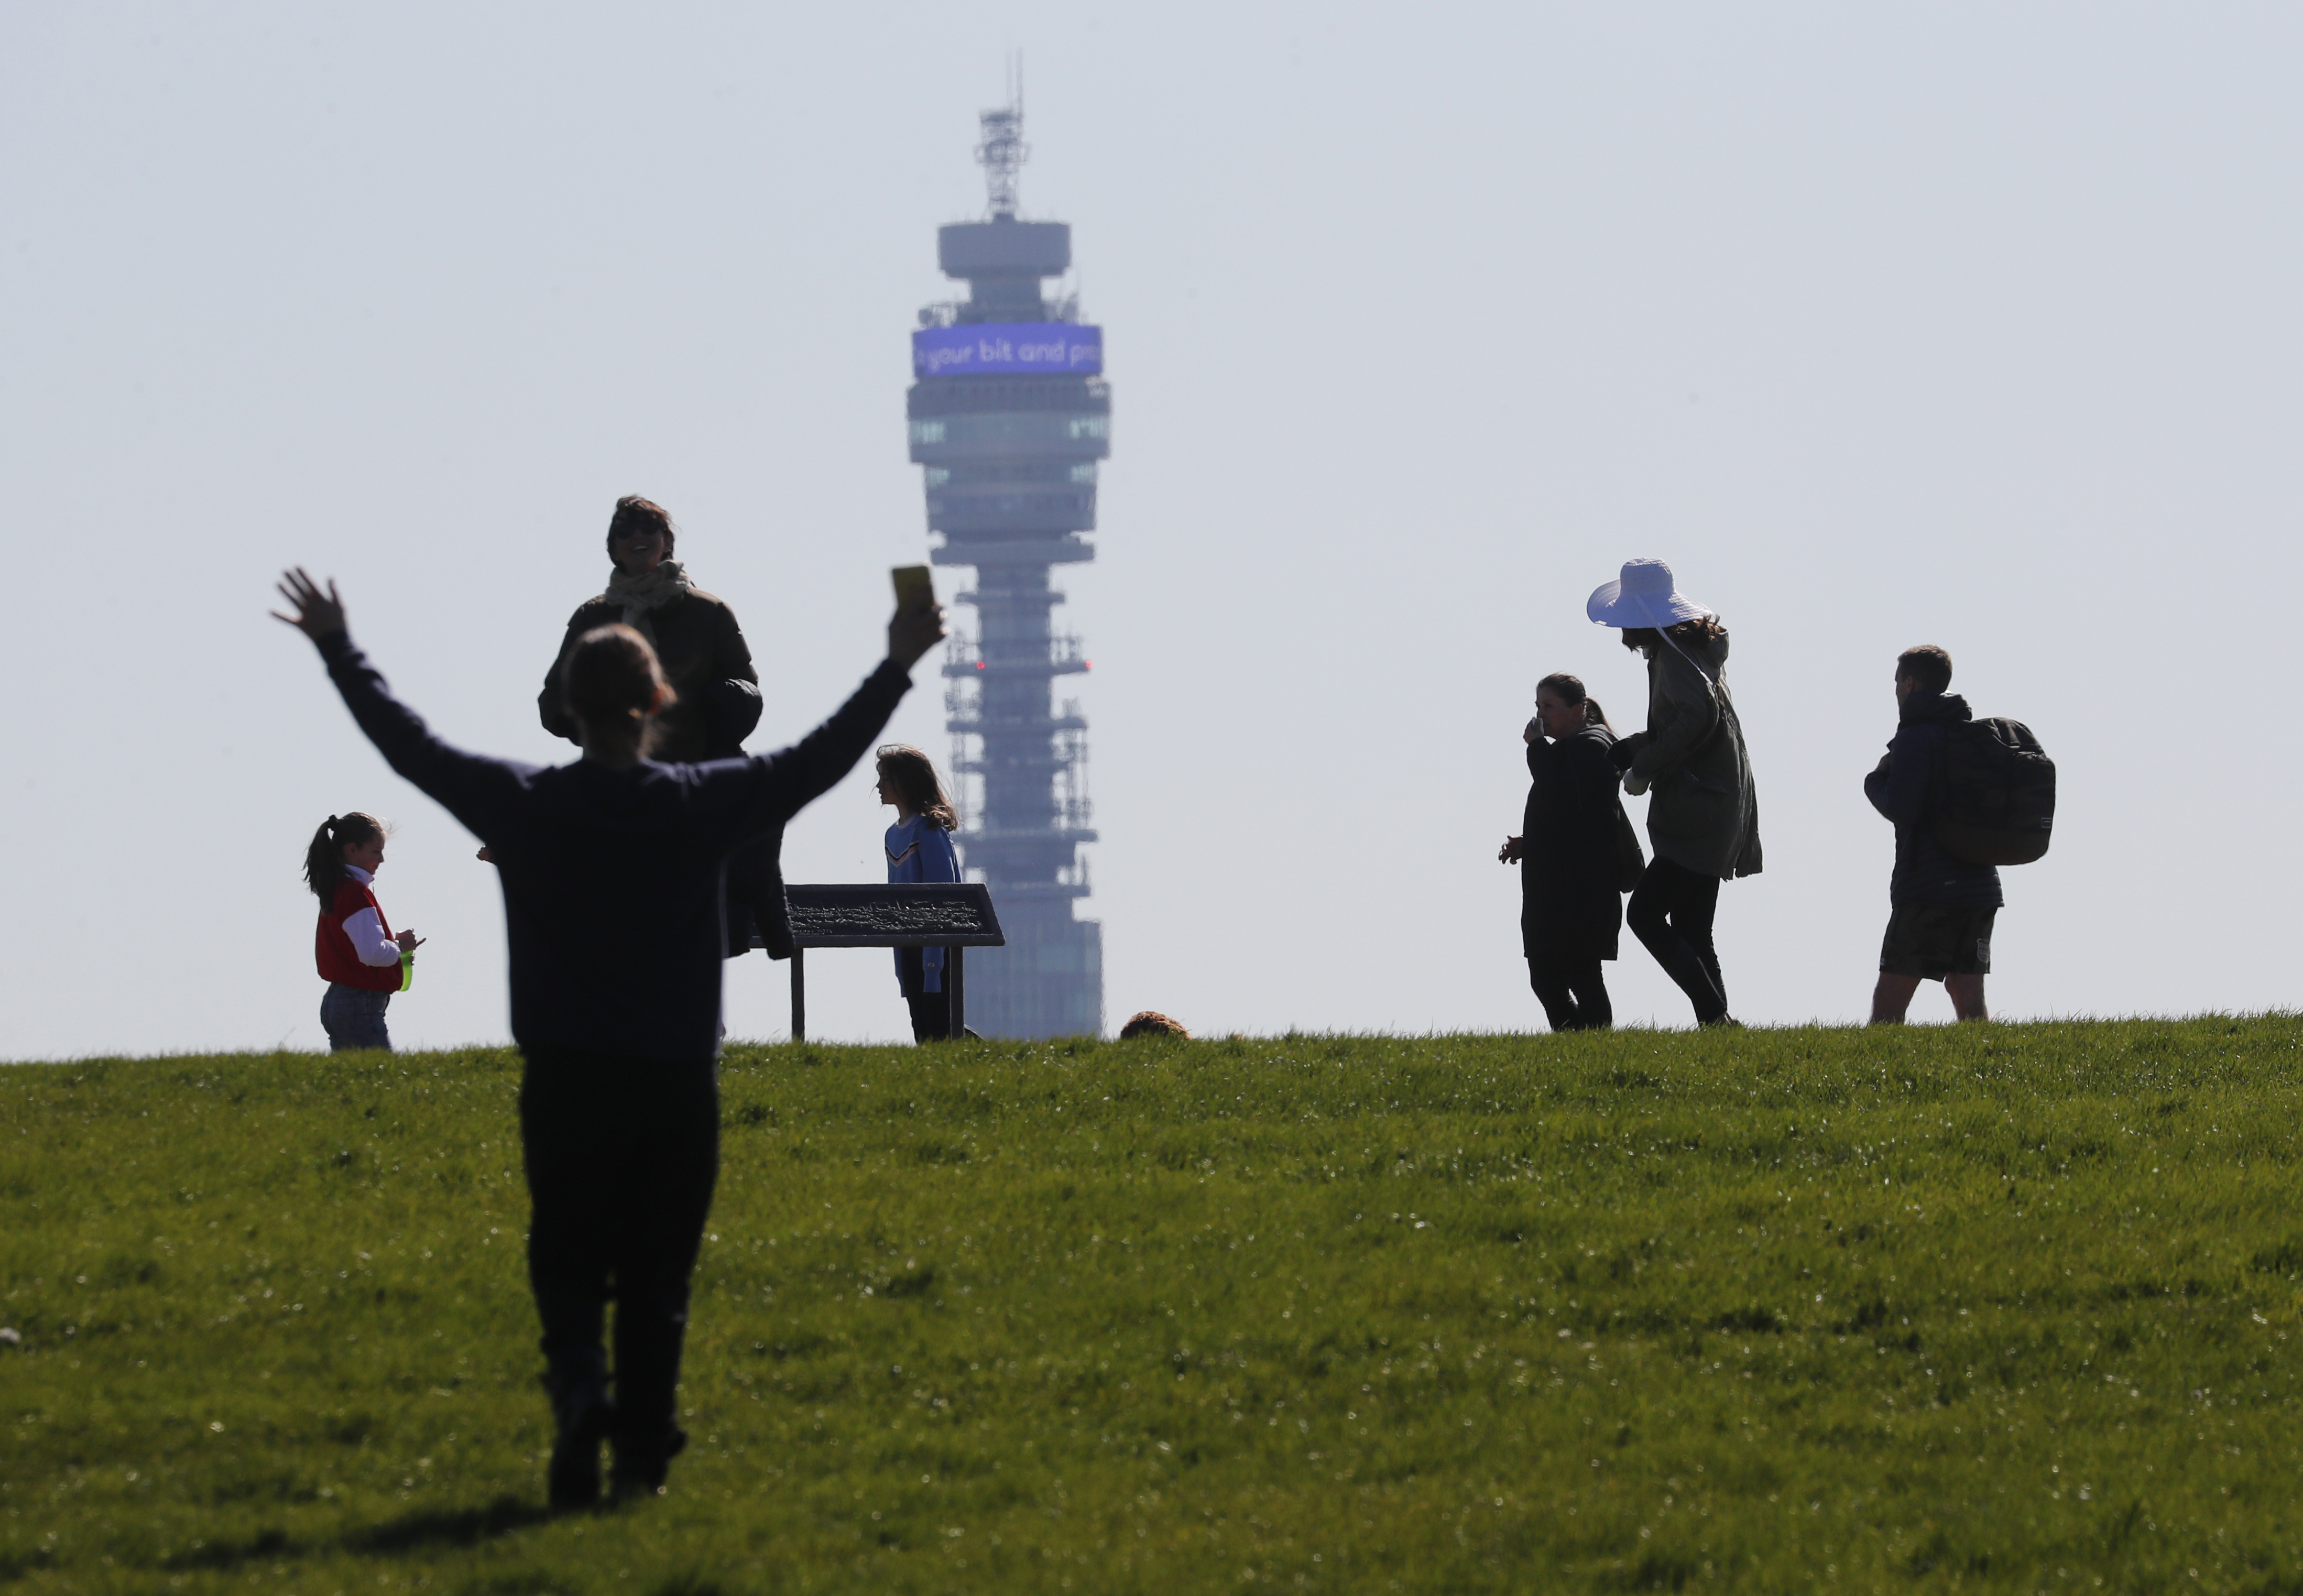 Pedestrians walk on Primrose Hill with the Post Office Tower as a backdrop in London, Monday, March 23, 2020. The British government is encouraging people to practice social distancing to help prohibit the spread of Coronavirus, further restrictions may be imposed if the public do not adhere to their advice. For most people, the new coronavirus causes only mild or moderate symptoms, such as fever and cough. For some, especially older adults and people with existing health problems, it can cause more severe illness, including pneumonia. (AP Photo/Frank Augstein)